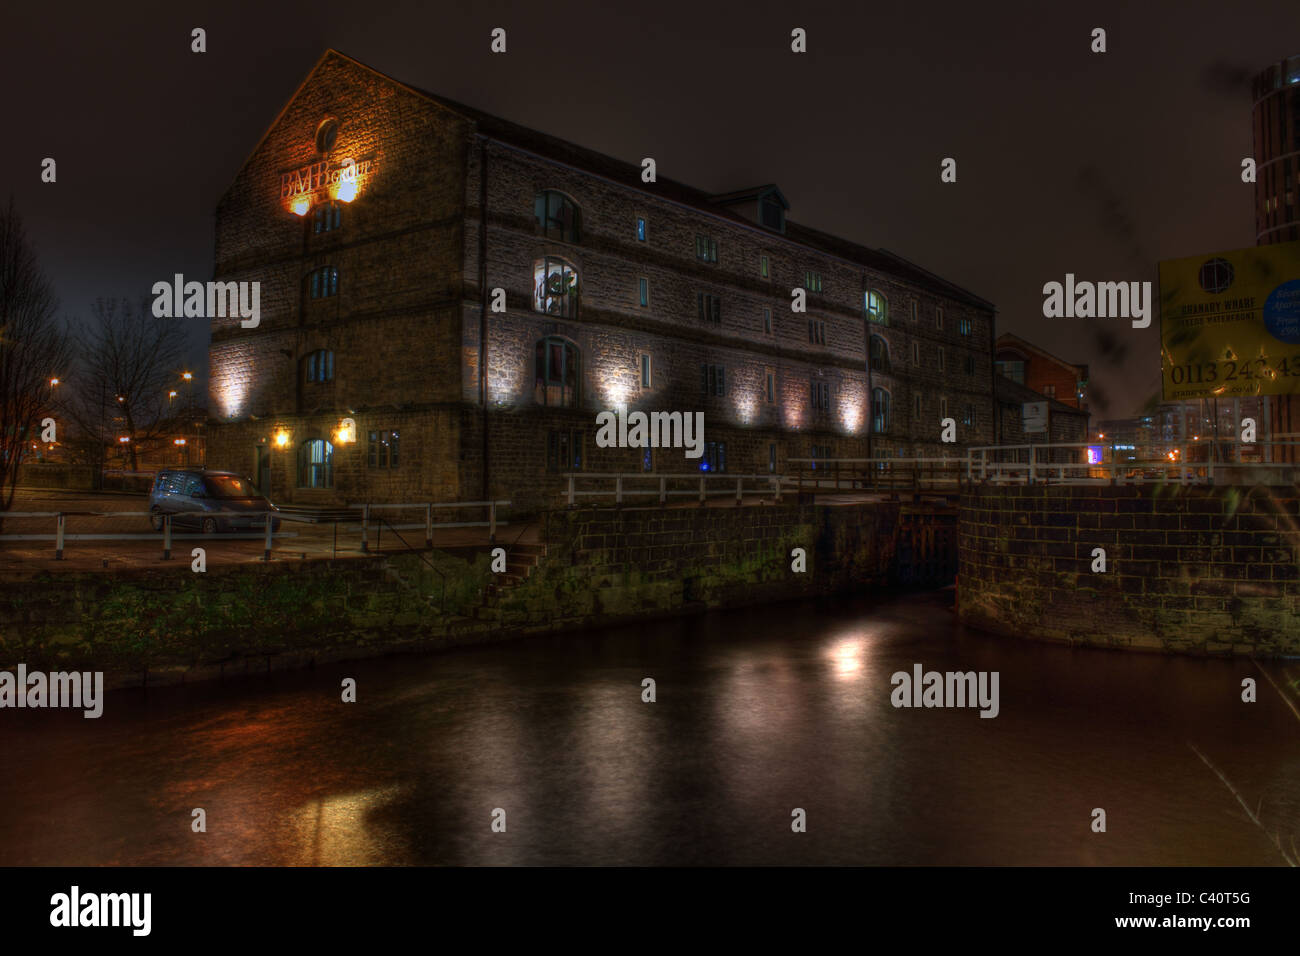 old mill conversion at night - Stock Image